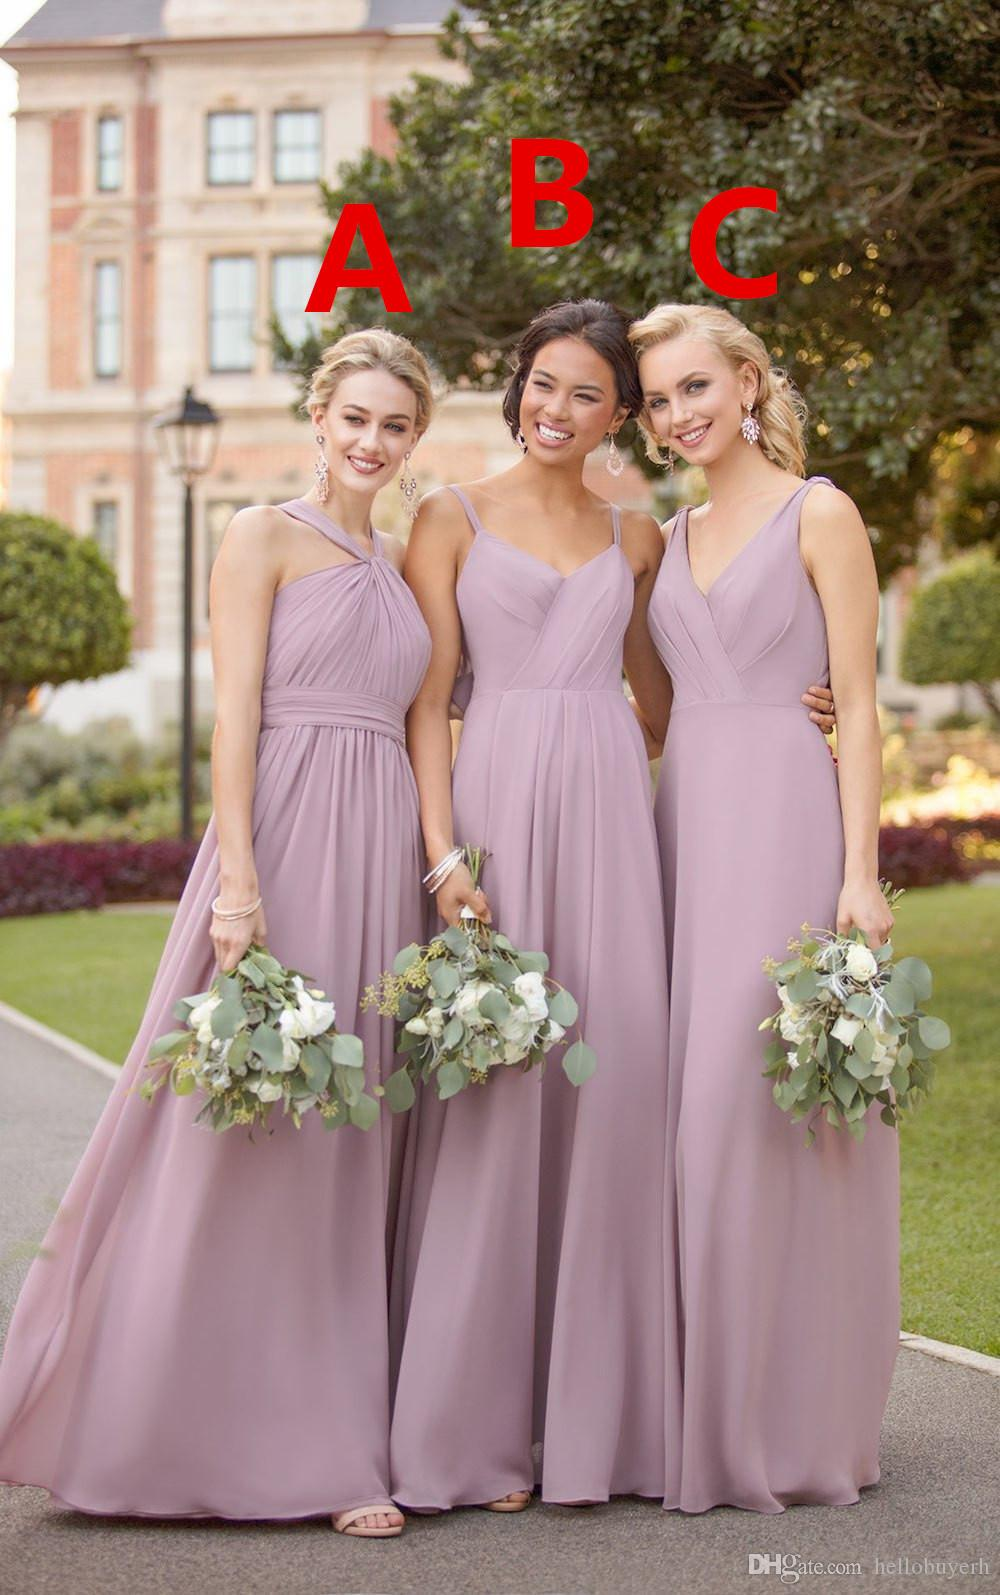 2020 new A Line Chiffon V neck Wedding Guest Dresses beach Loong Bridesmaid Dresses vestidos de noche Elegant Evening Gowns